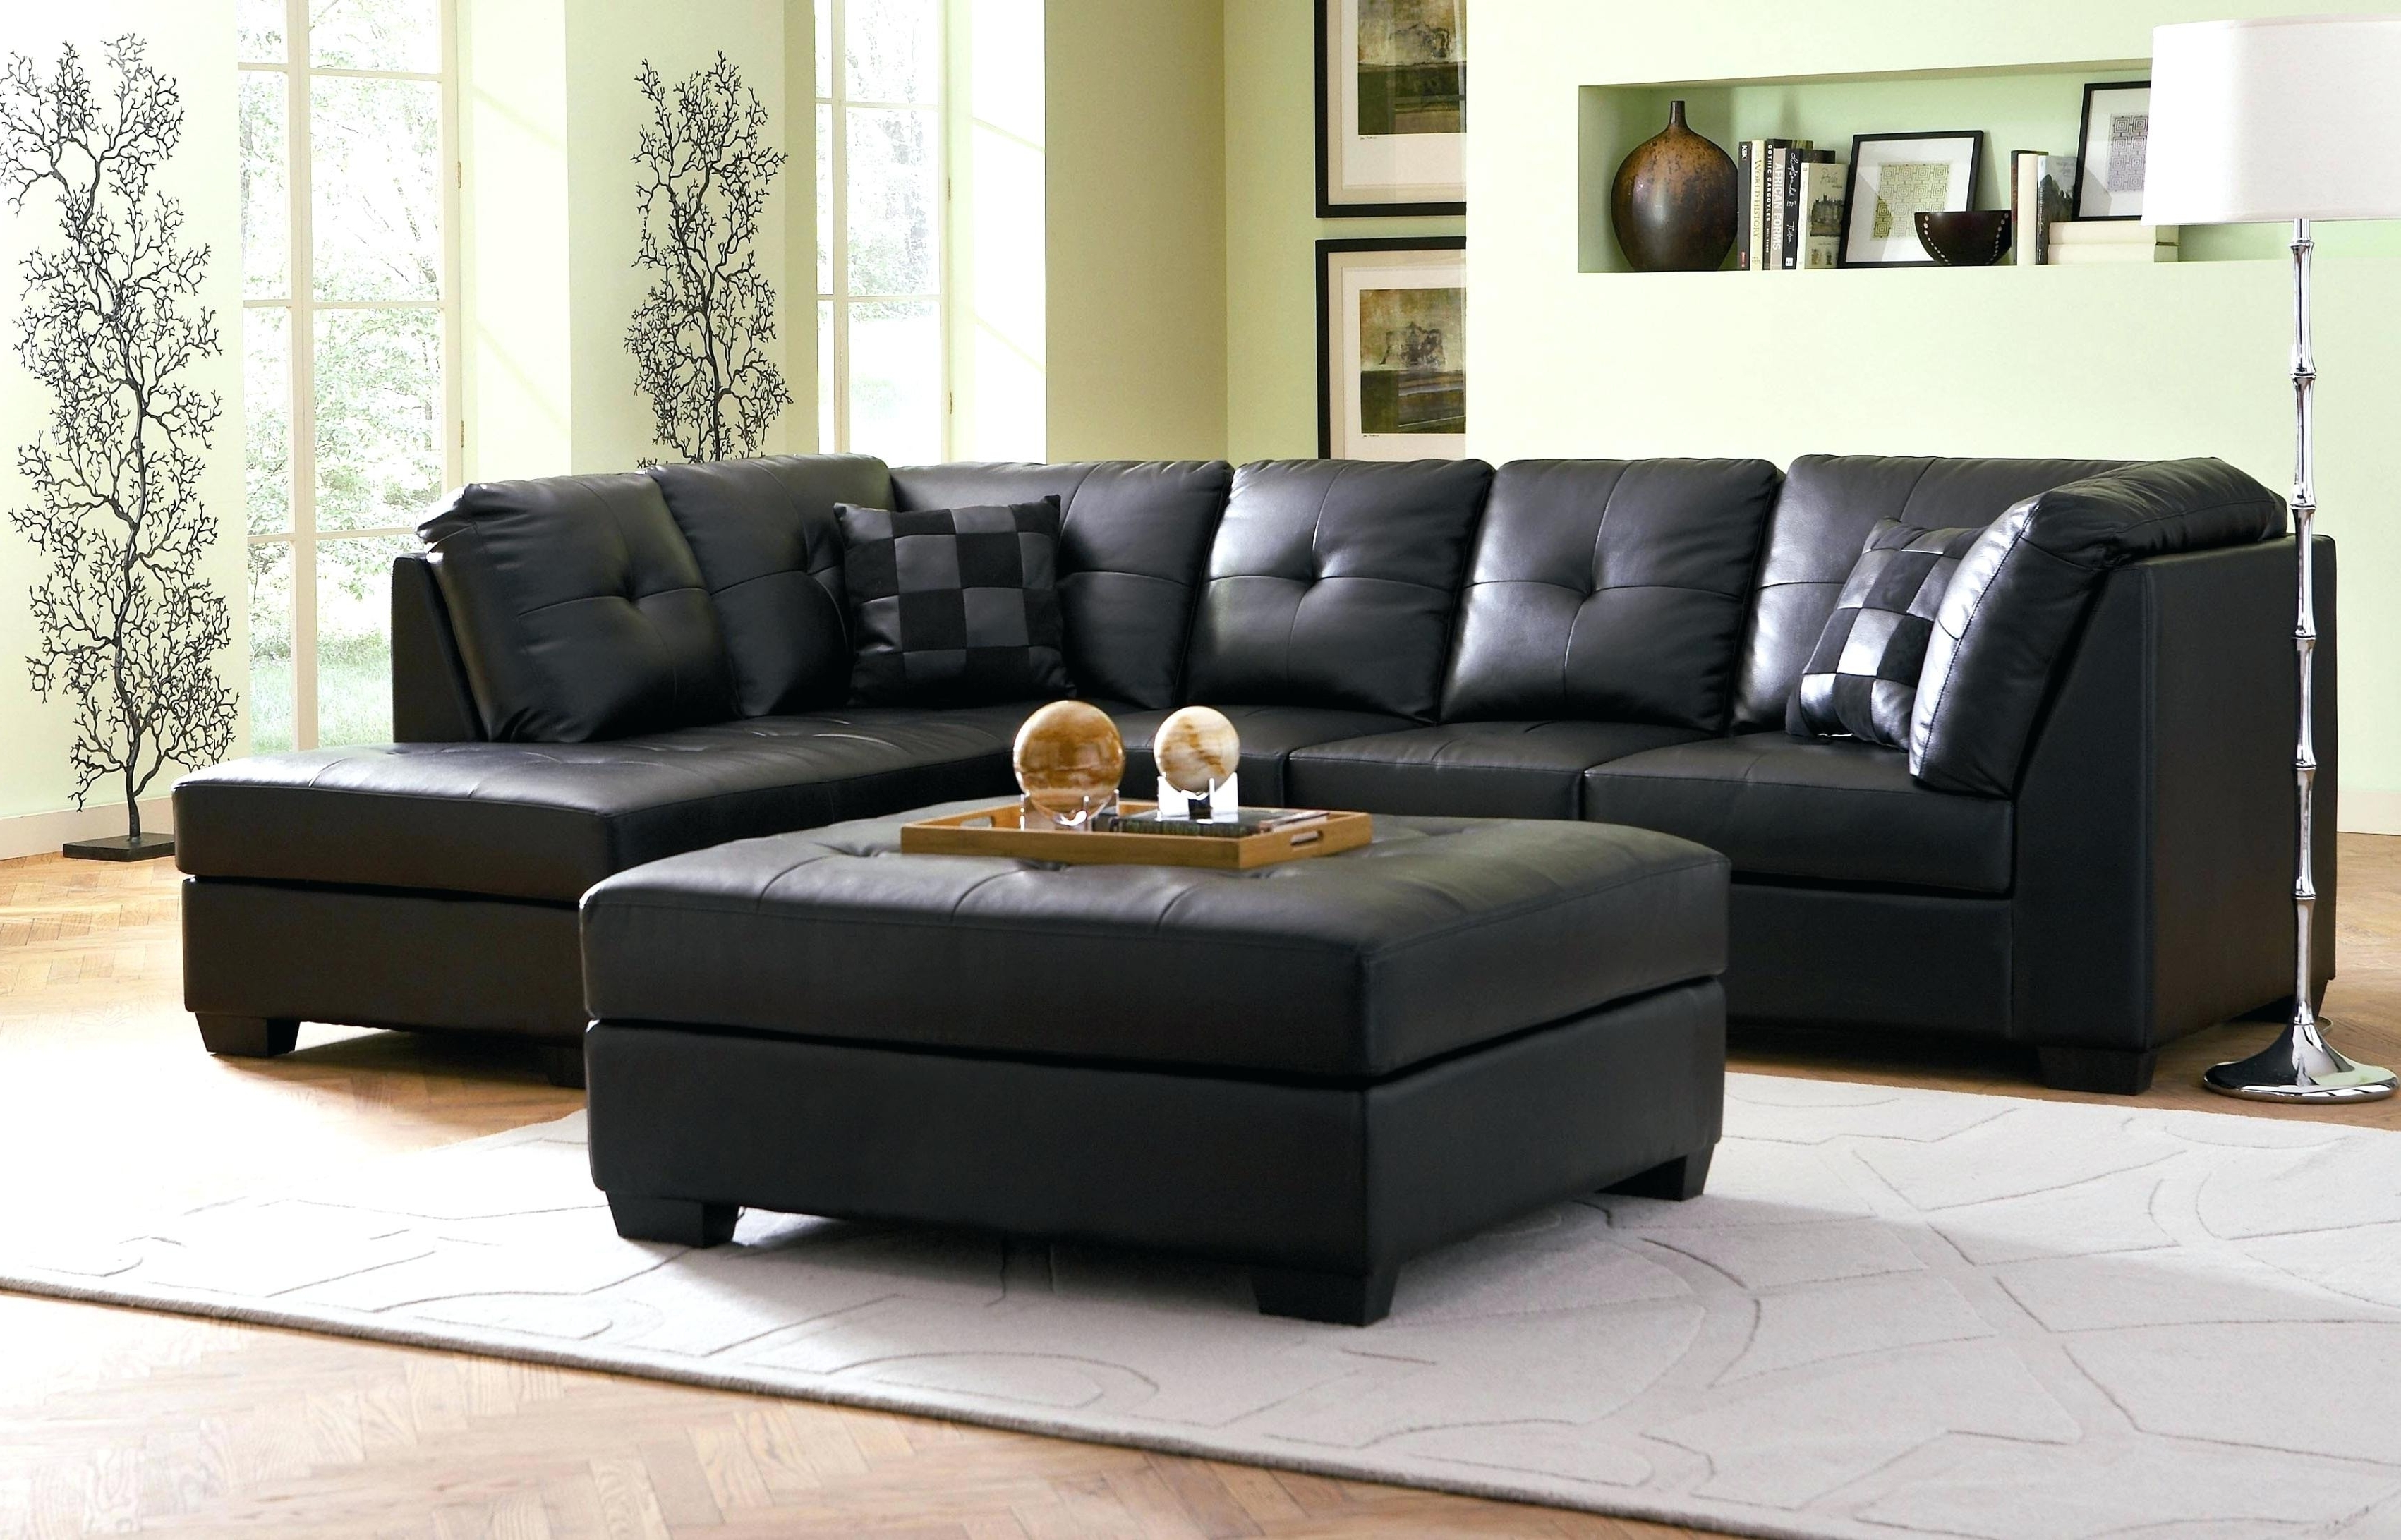 Sectional Sofas Under 300 Regarding Well Known Furniture : Magnificent Cheap Sectional Sofas Under 300 Lovely (View 7 of 20)